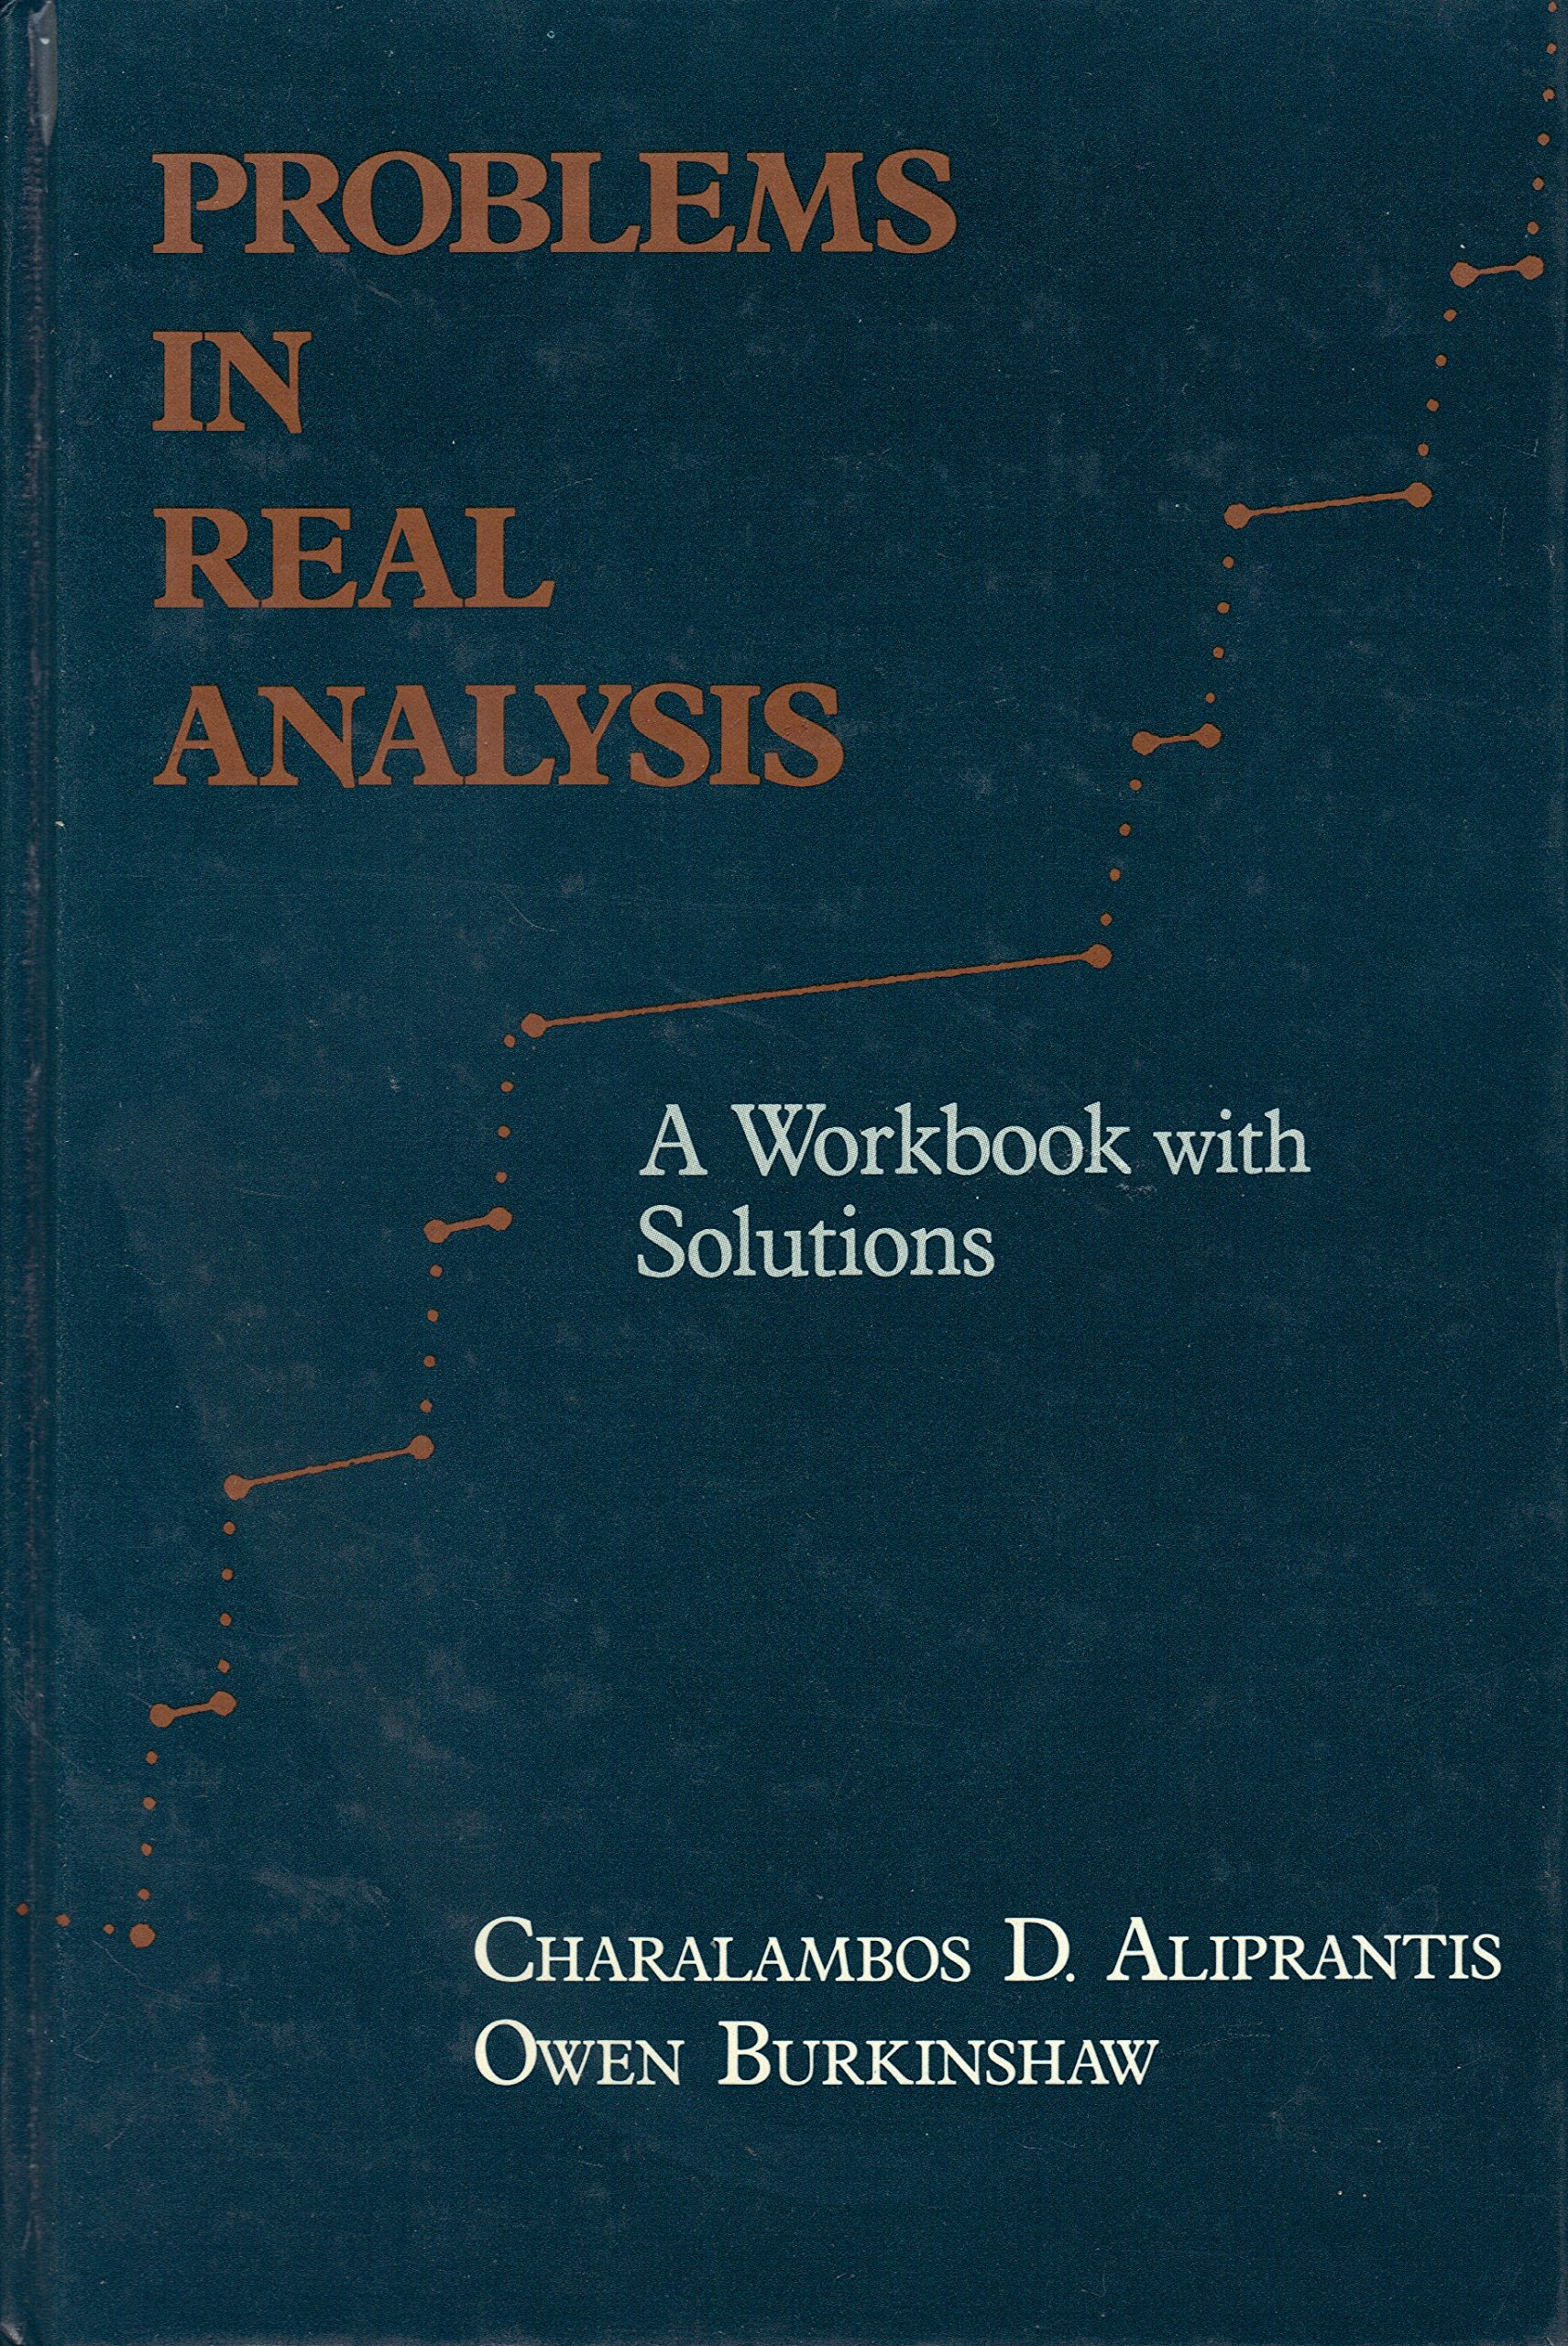 Buy problems in real analysis a workbook with solutions book online buy problems in real analysis a workbook with solutions book online at low prices in india problems in real analysis a workbook with solutions reviews fandeluxe Images